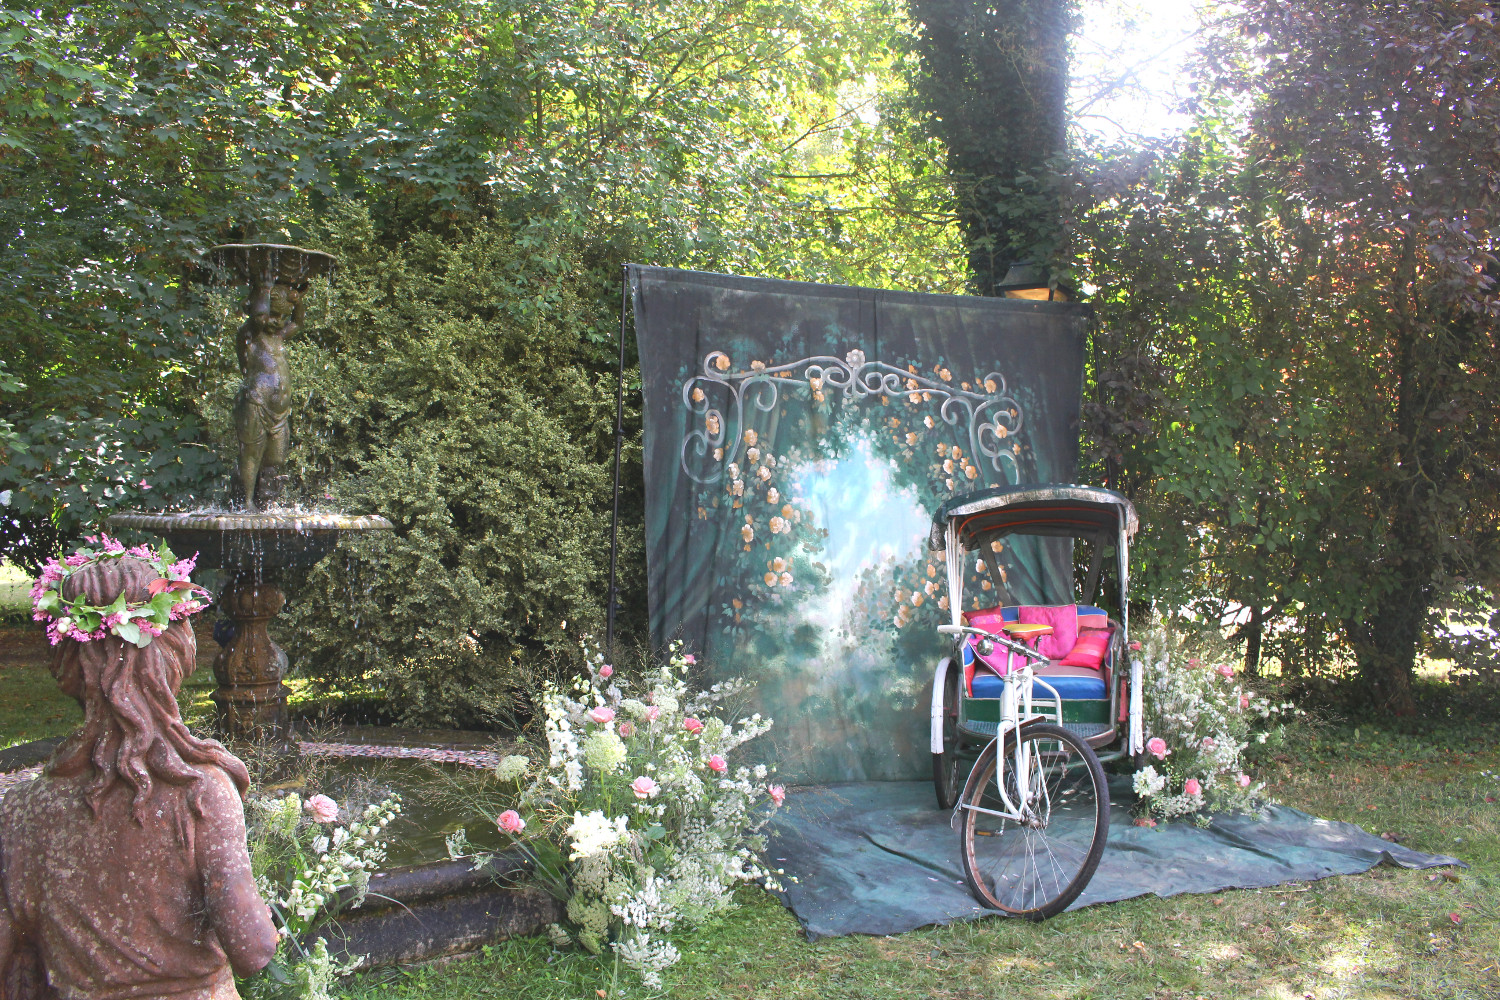 location-rickshaw-decor-mariage-indien-toile-photobooth